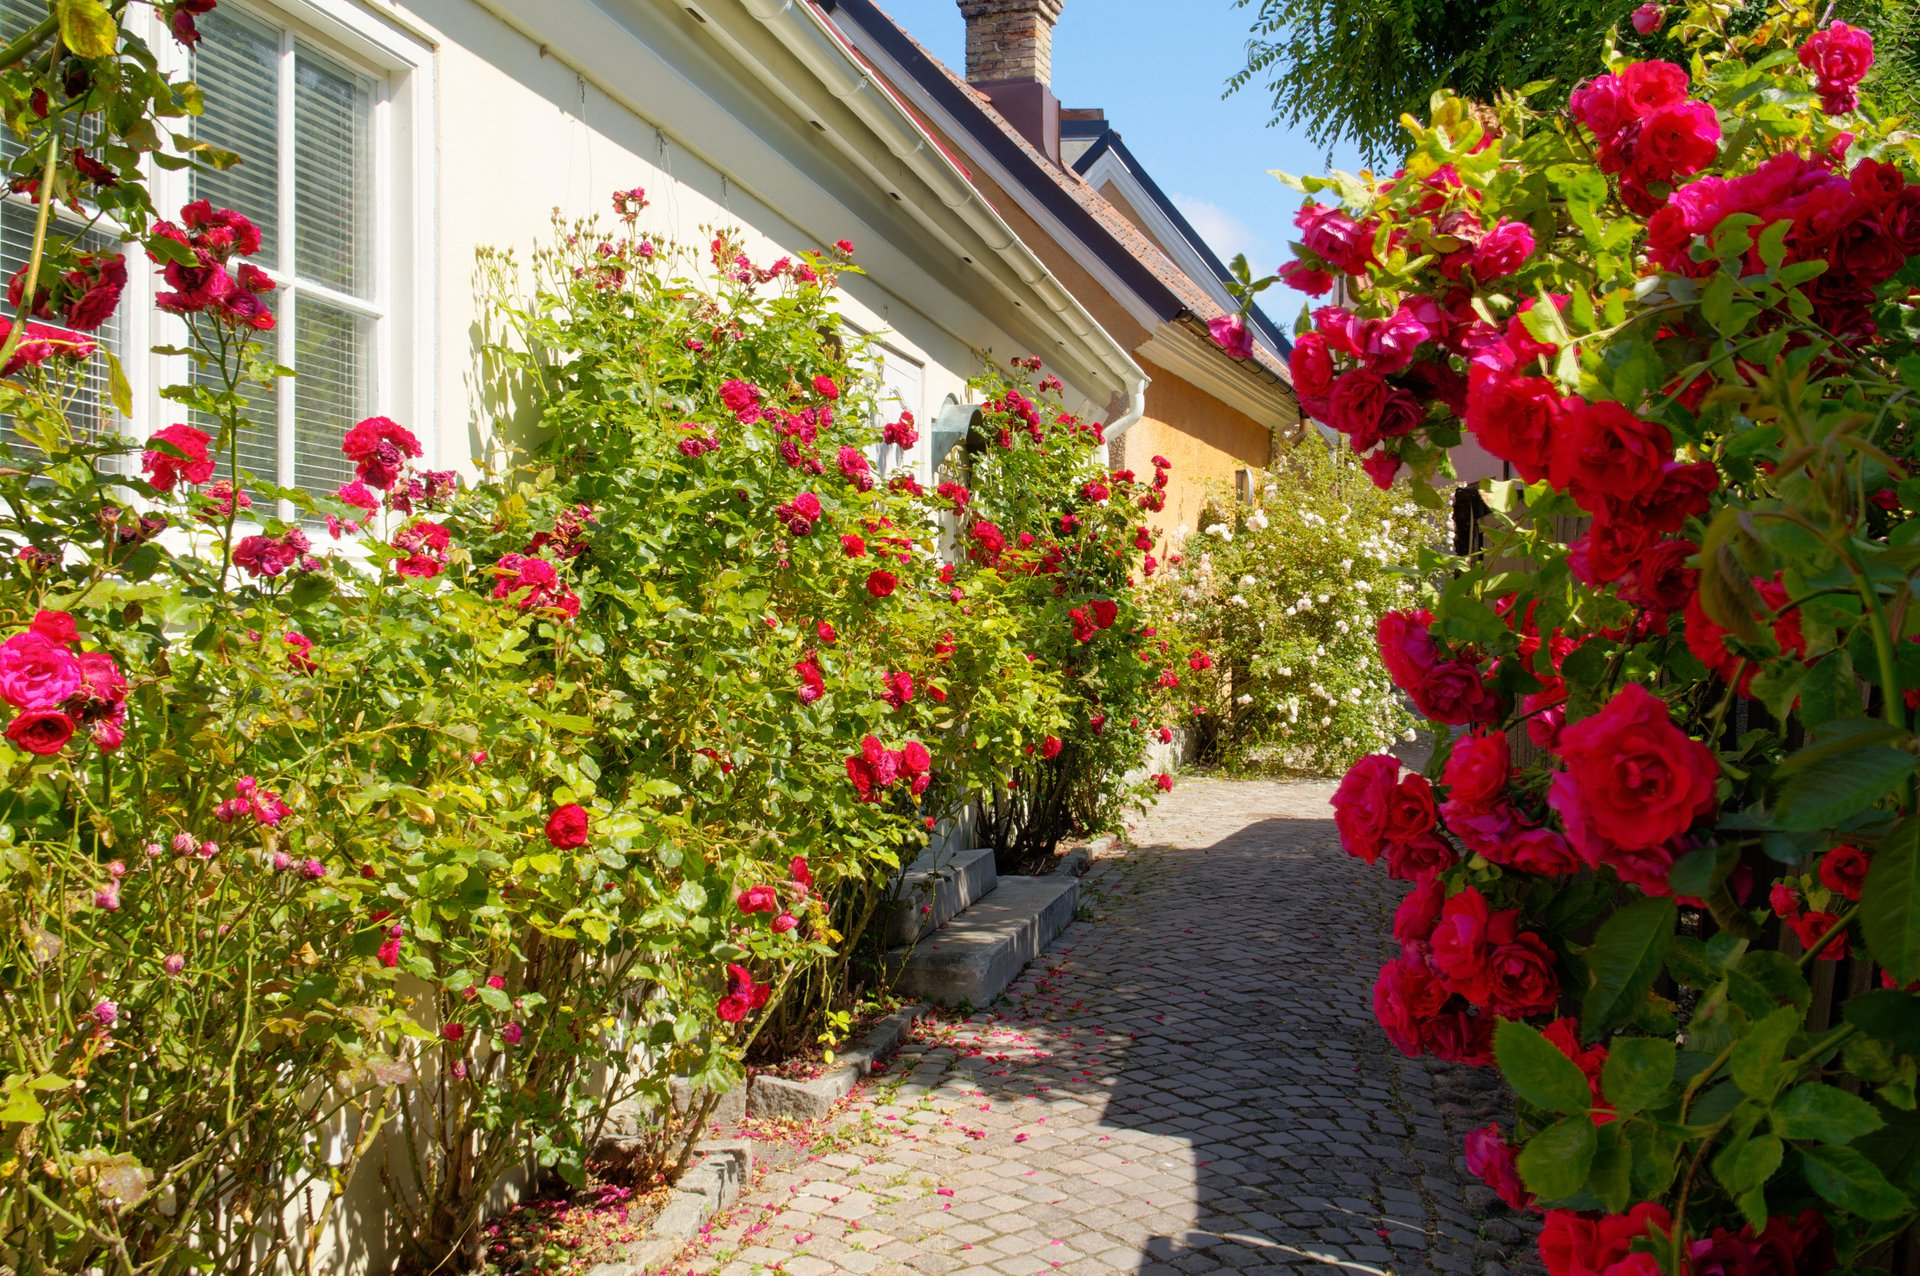 The Island of Roses in Sweden - Best Season